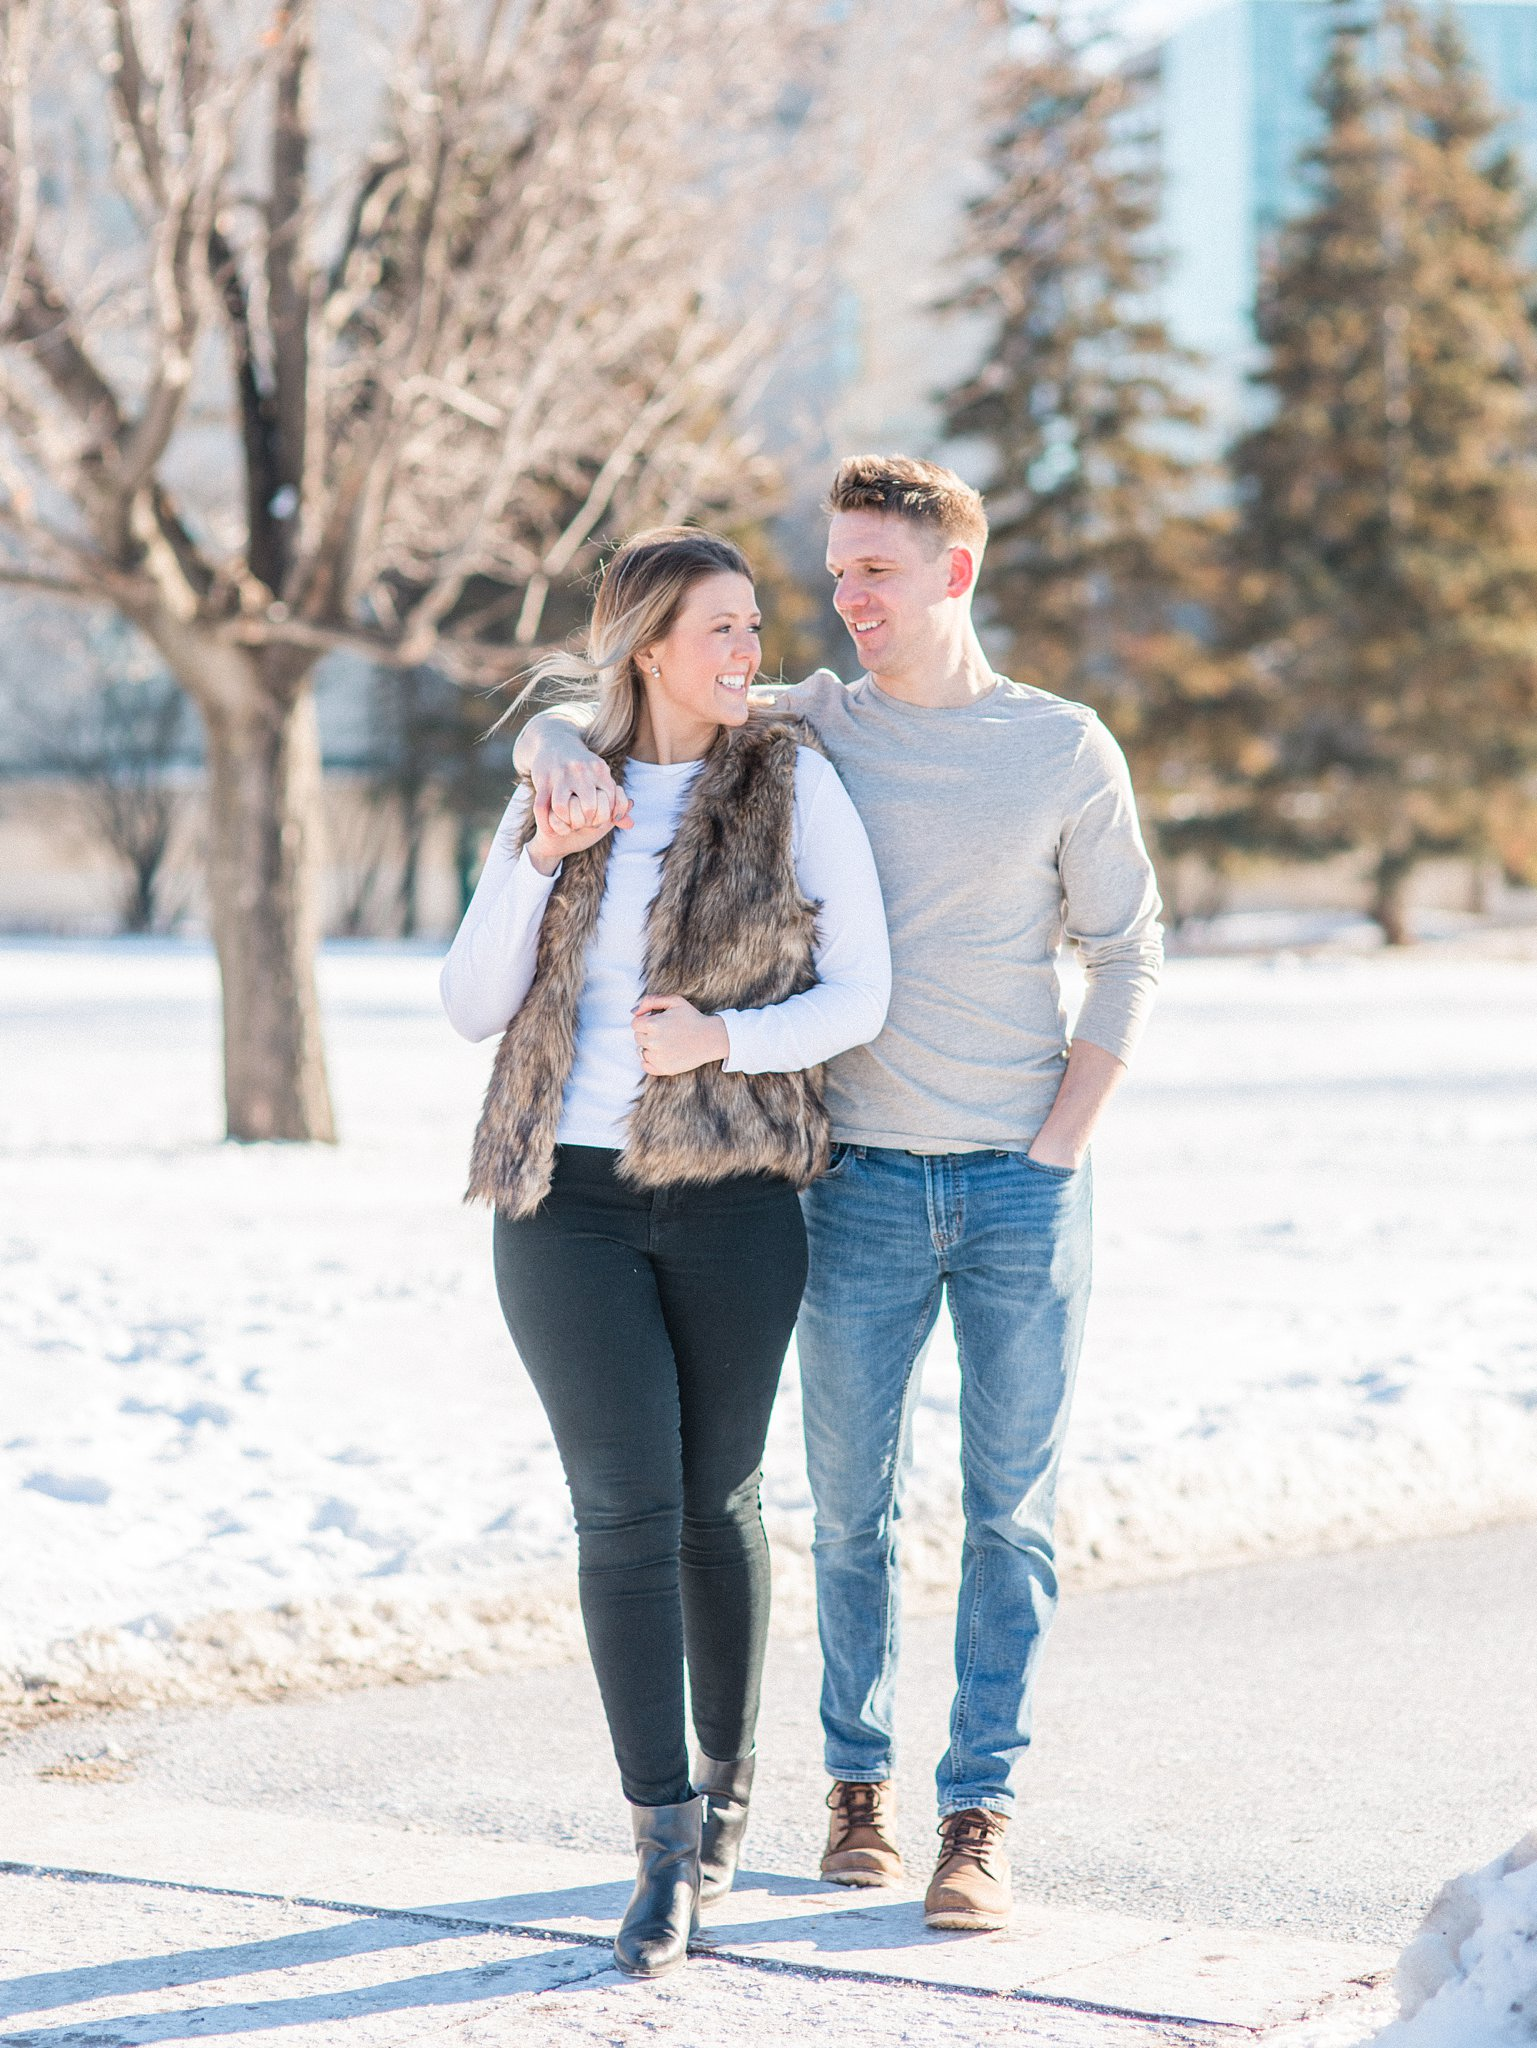 Faux fur vest, Downtown Ottawa Winter Engagement Photos at the Chateau Laurier